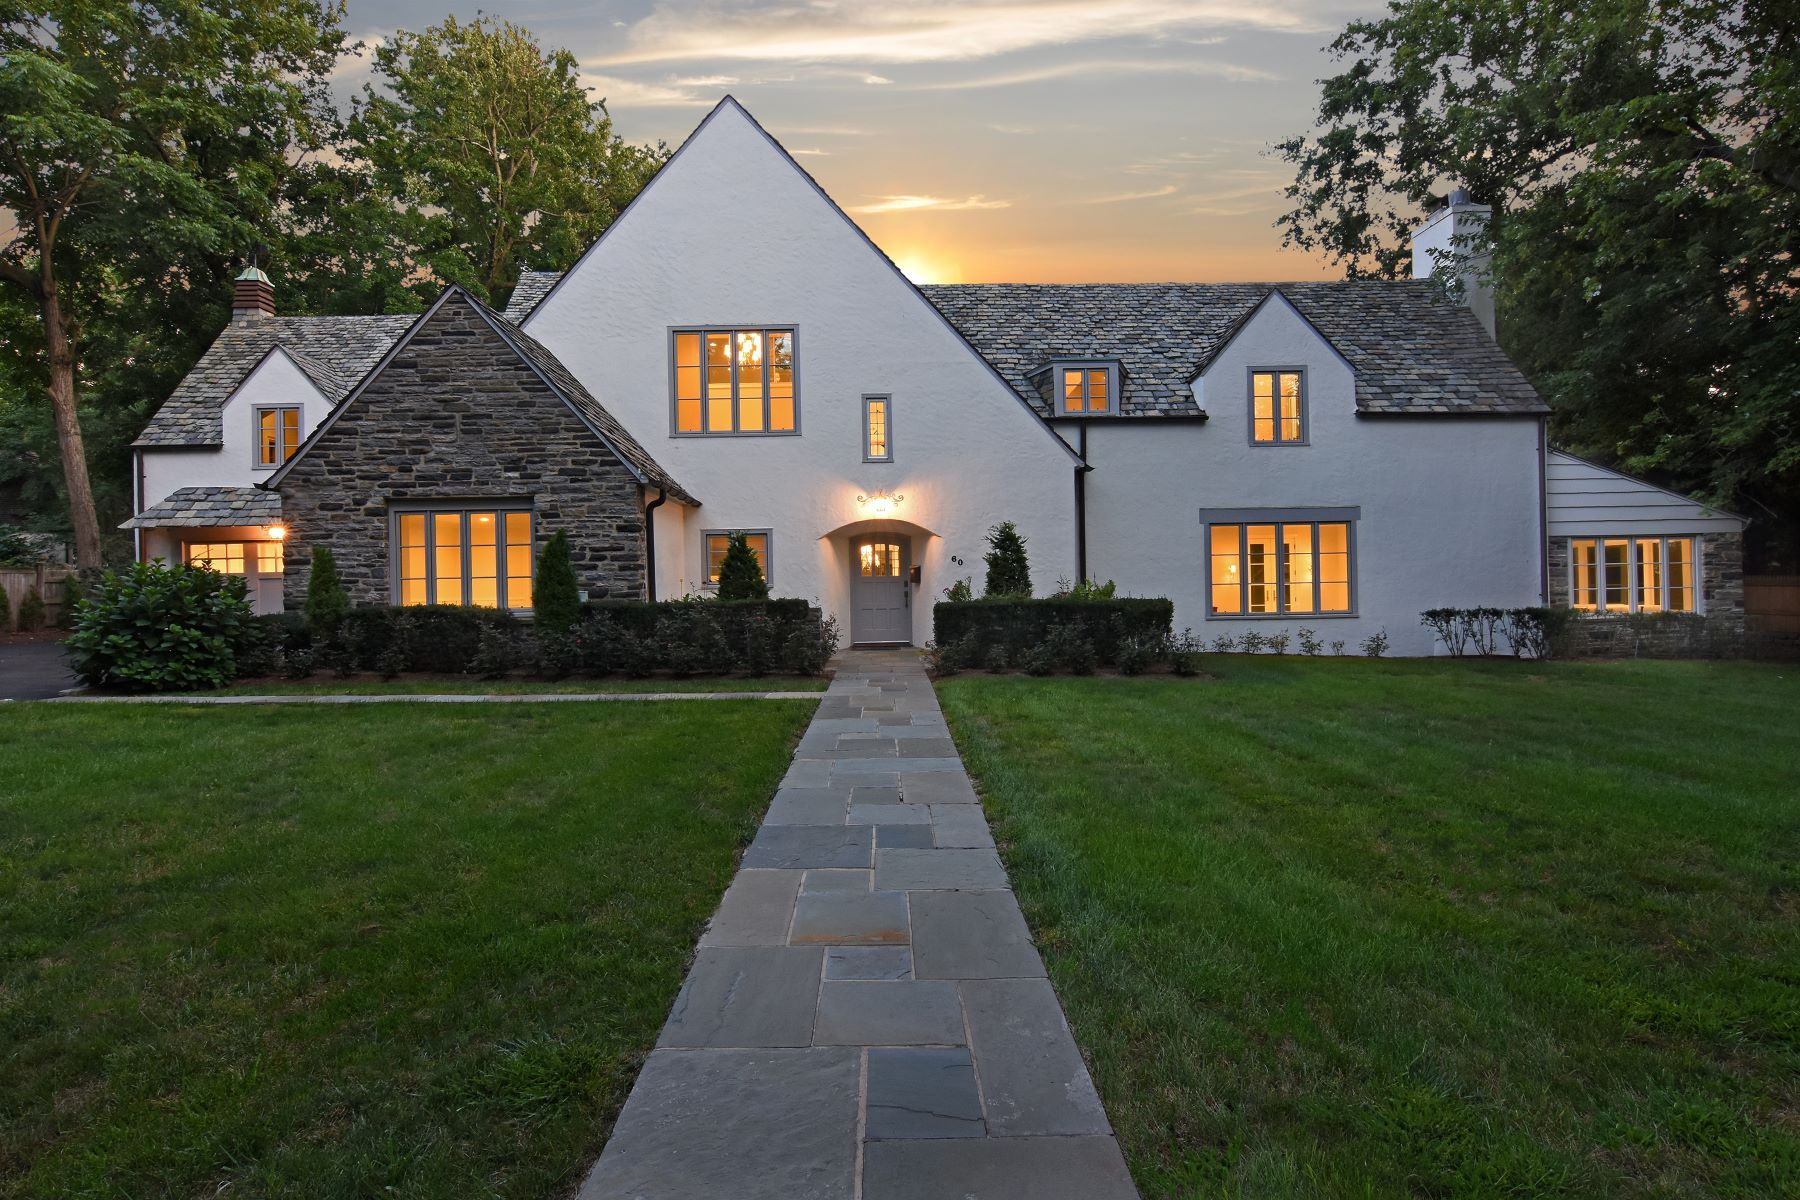 Single Family Homes for Sale at Welcome To 60 Hampshire Road 60 Hampshire Road Bronxville, New York 10708 United States